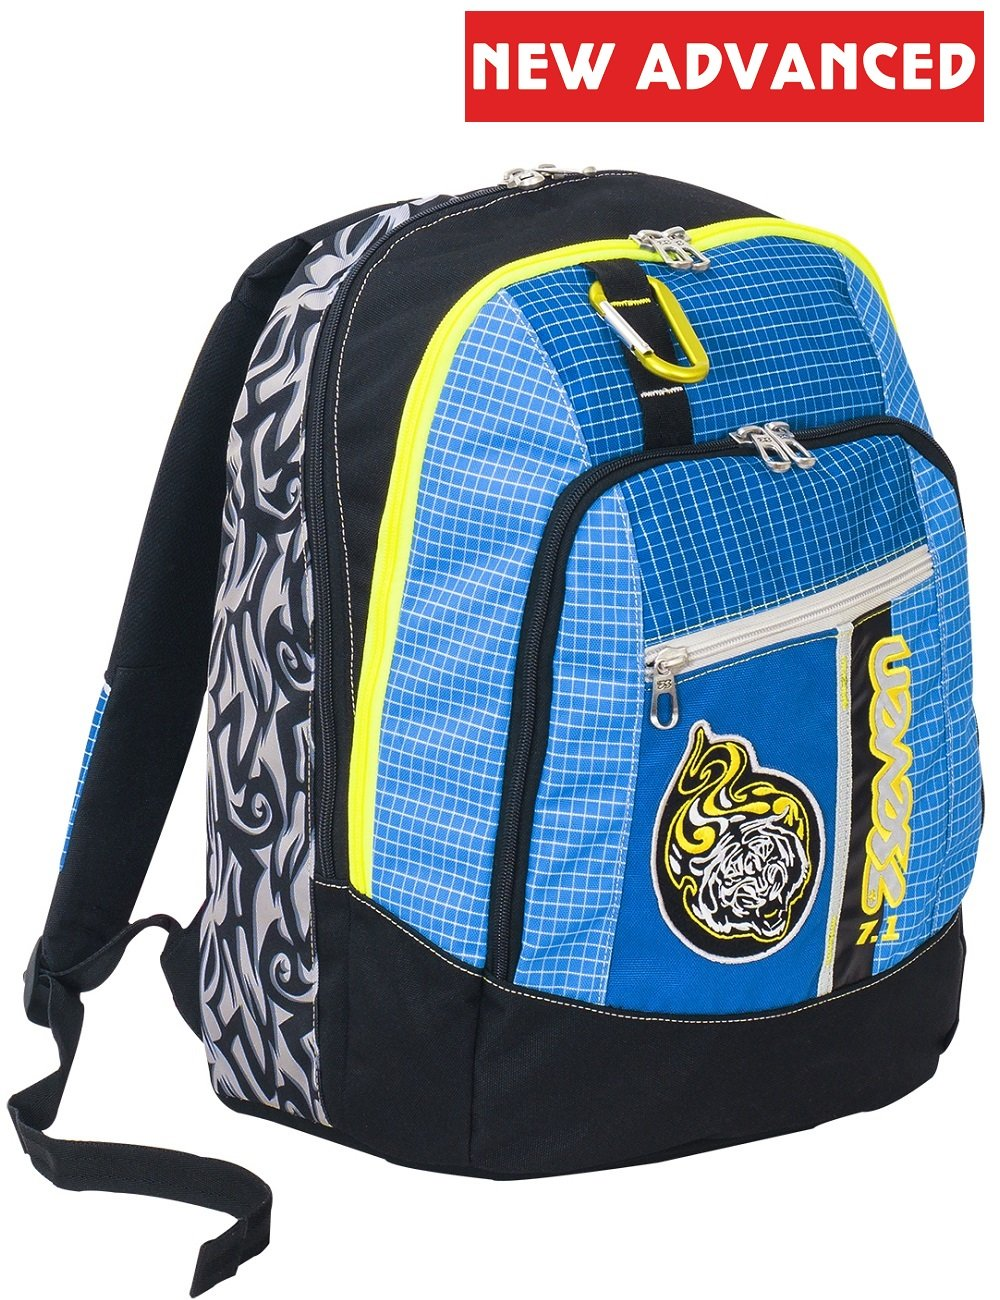 Backpack Seven Advanced Tribal Boy Blue